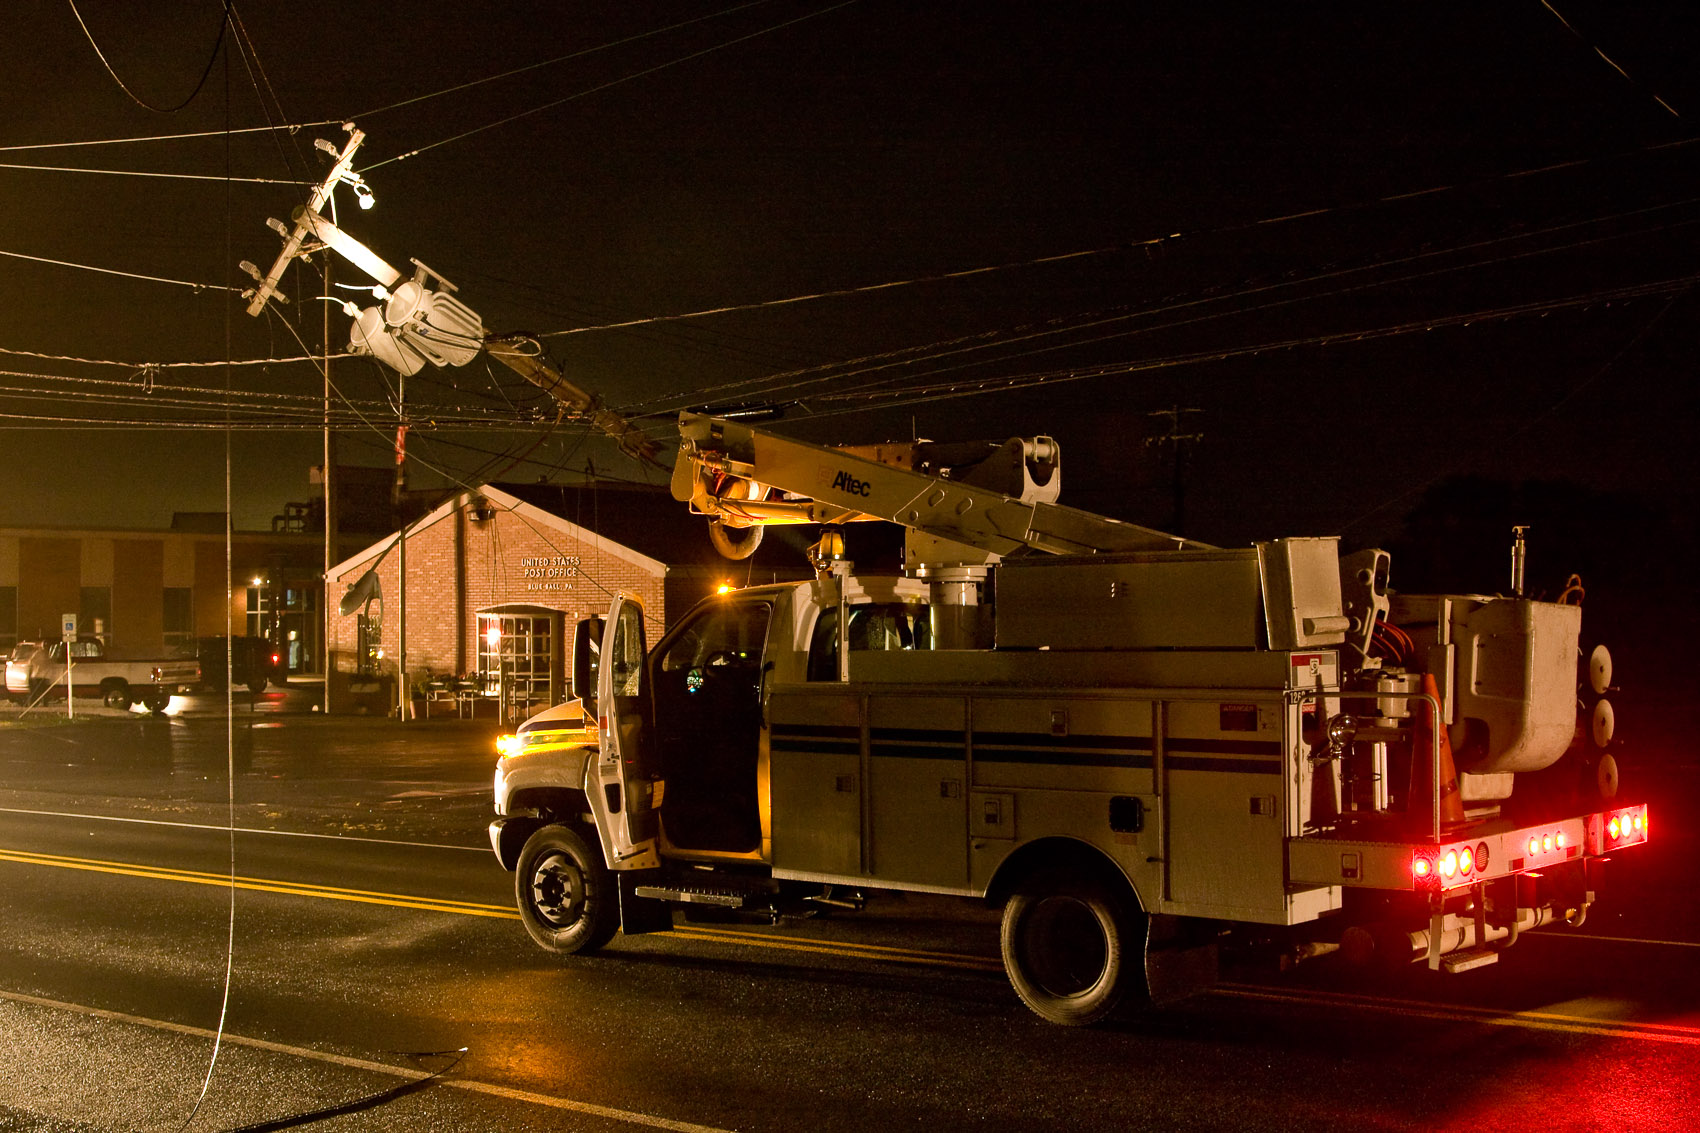 Location Photograph of a PPL Bucket Truck on the Scene of an Accident | J. Eldon Zimmerman Photography | Lancaster, PA Commercial Photographer